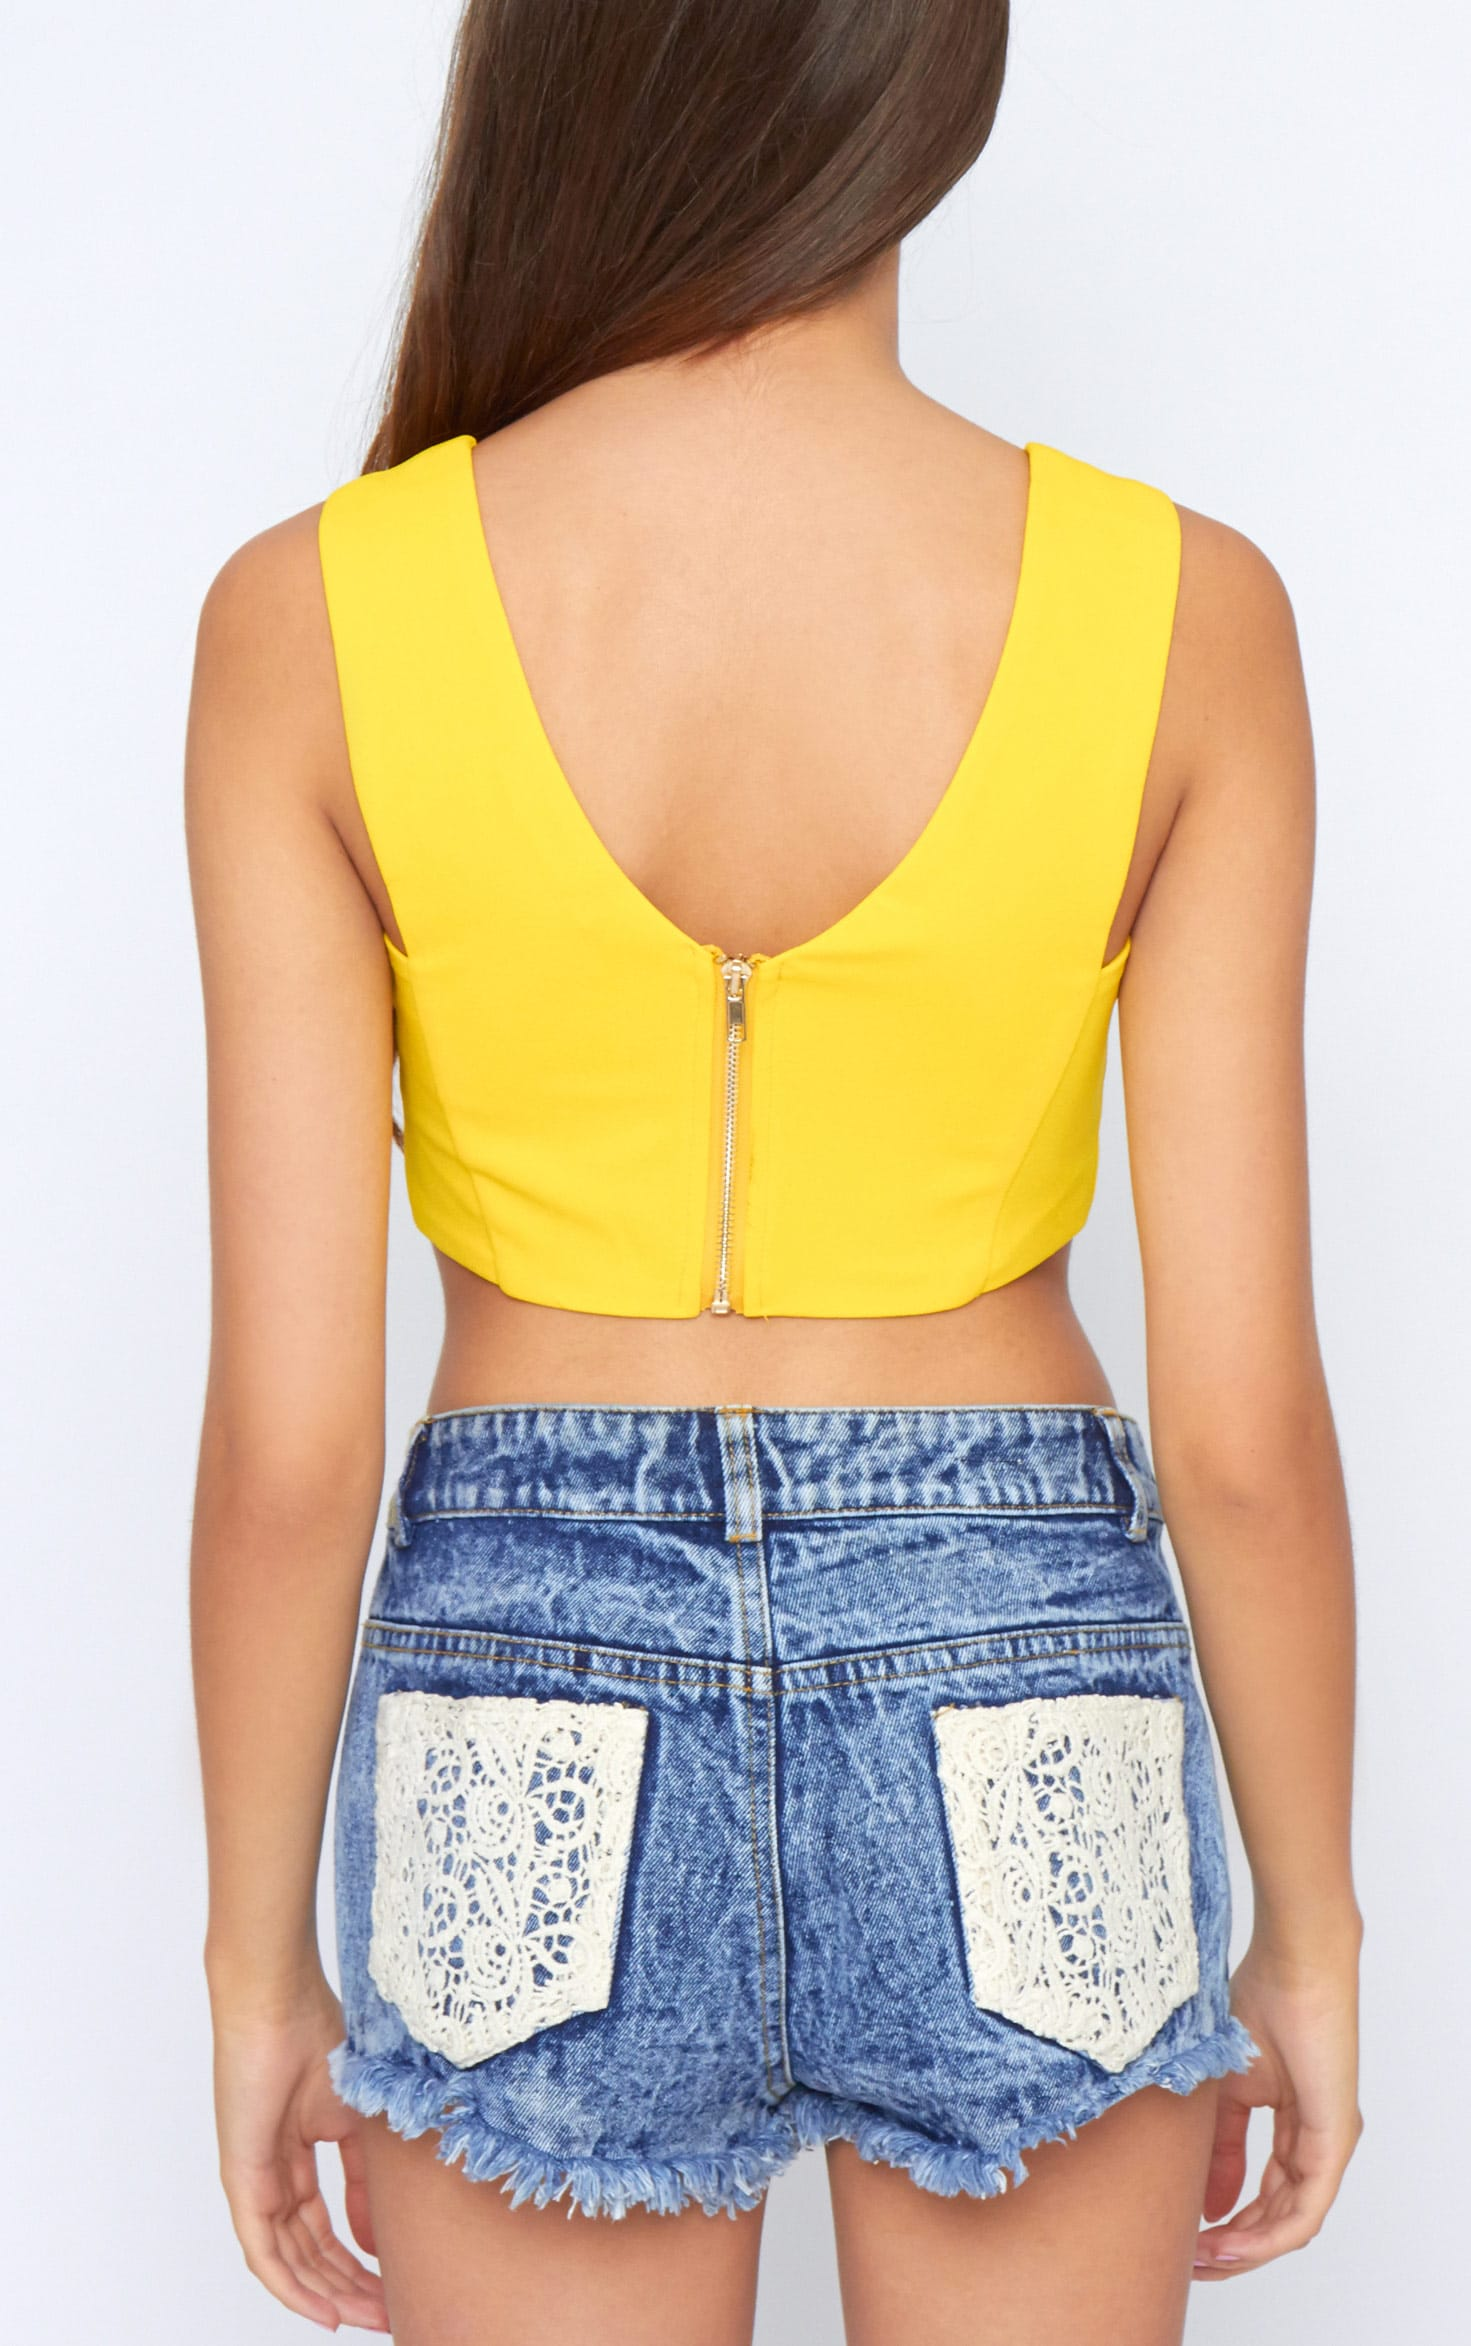 Serenity Yellow Low V Bralet 2